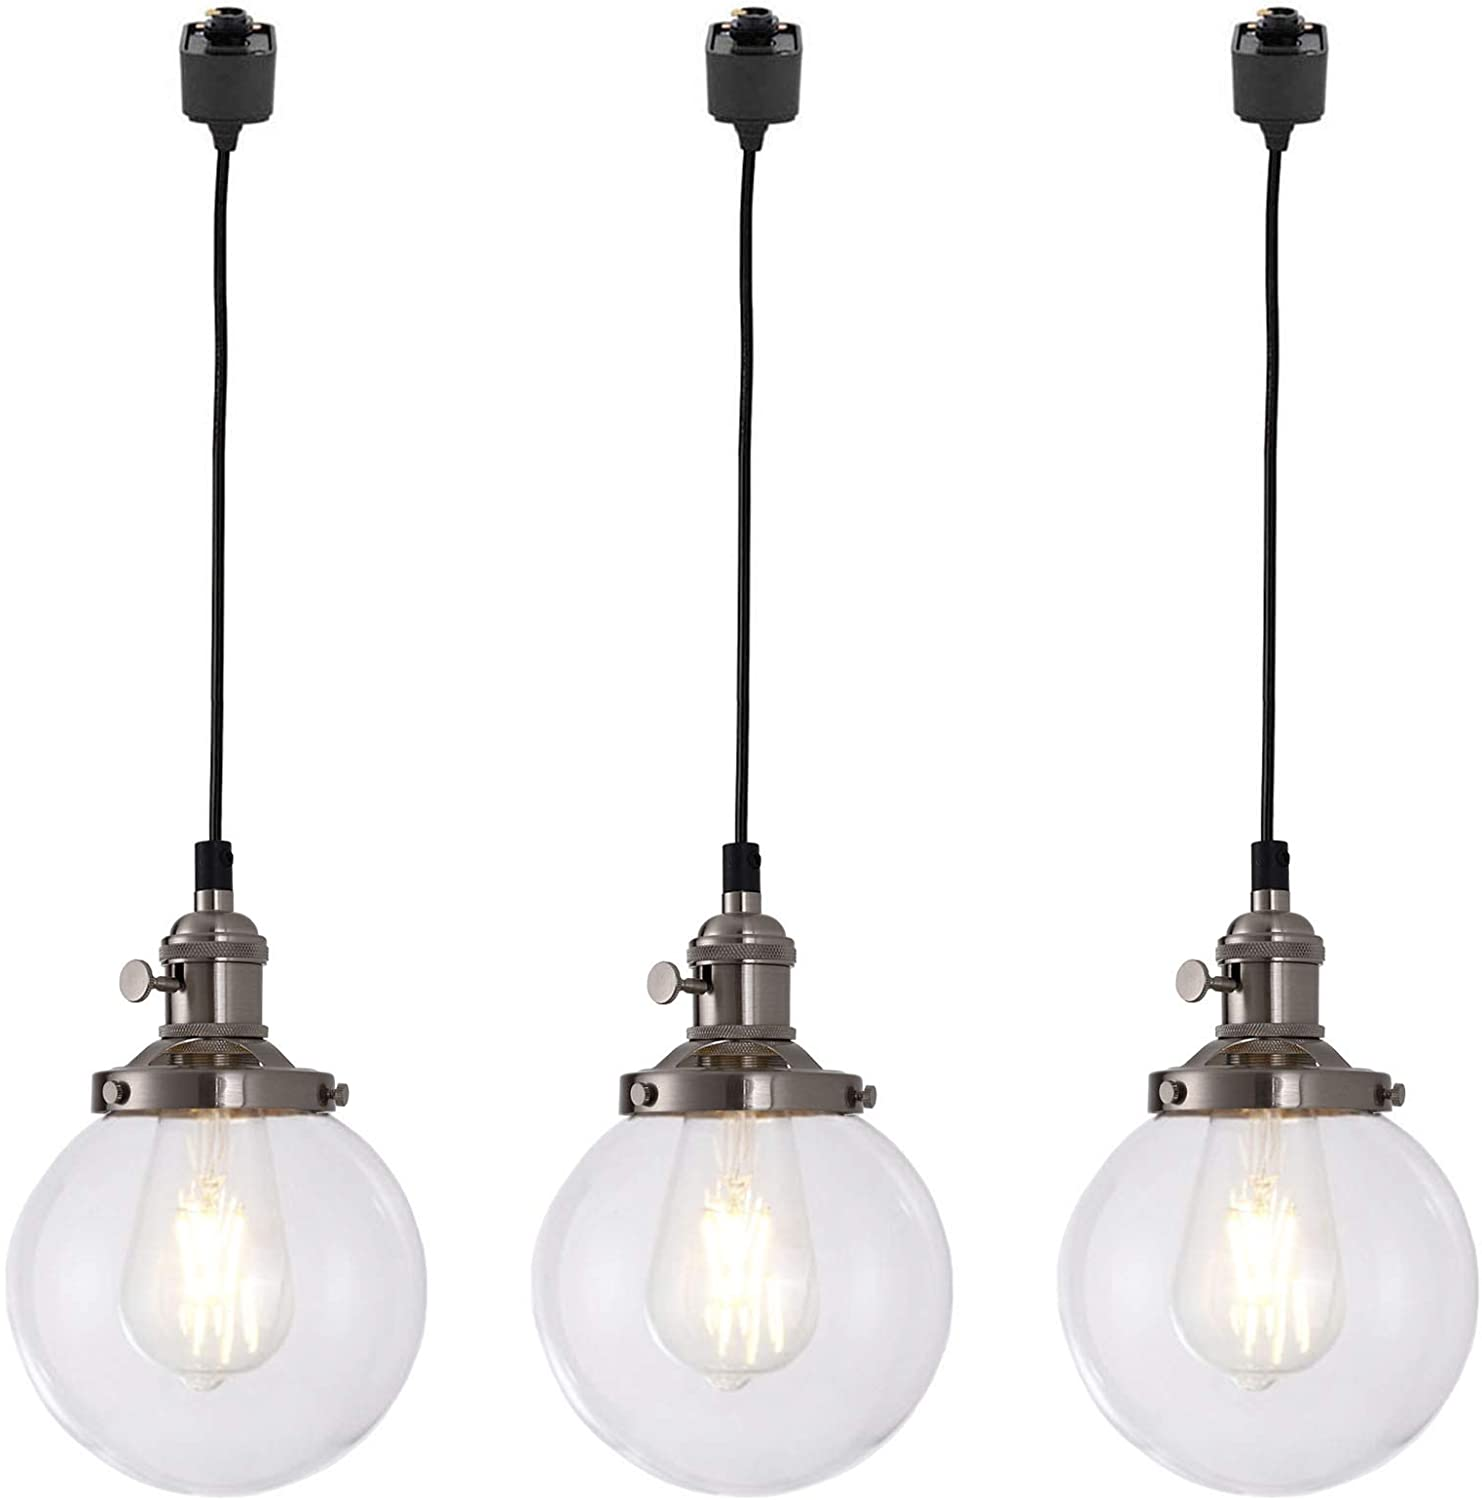 """Kiven 3 Lights H-Track Lighting Pendant, Vintage Industrial Pendant Light Fixture with 5.9"""" Handmade Globe Clear Shade (Brushed Steel) from Amazon"""